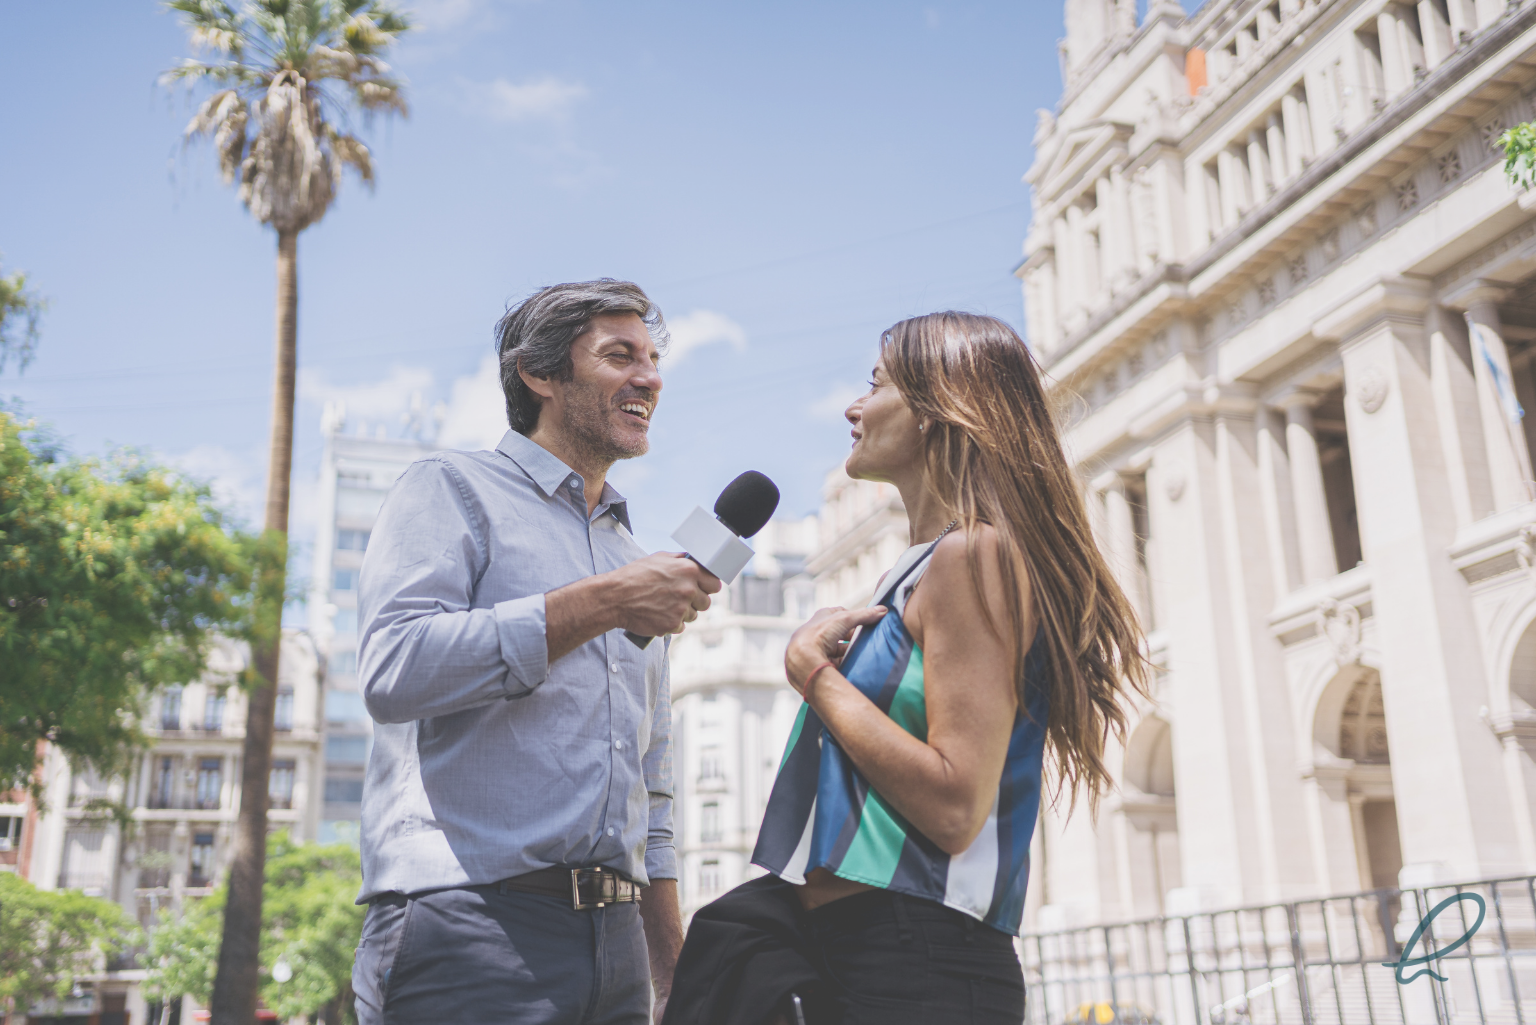 Use Mainstream Media to Become a Trusted Influencer